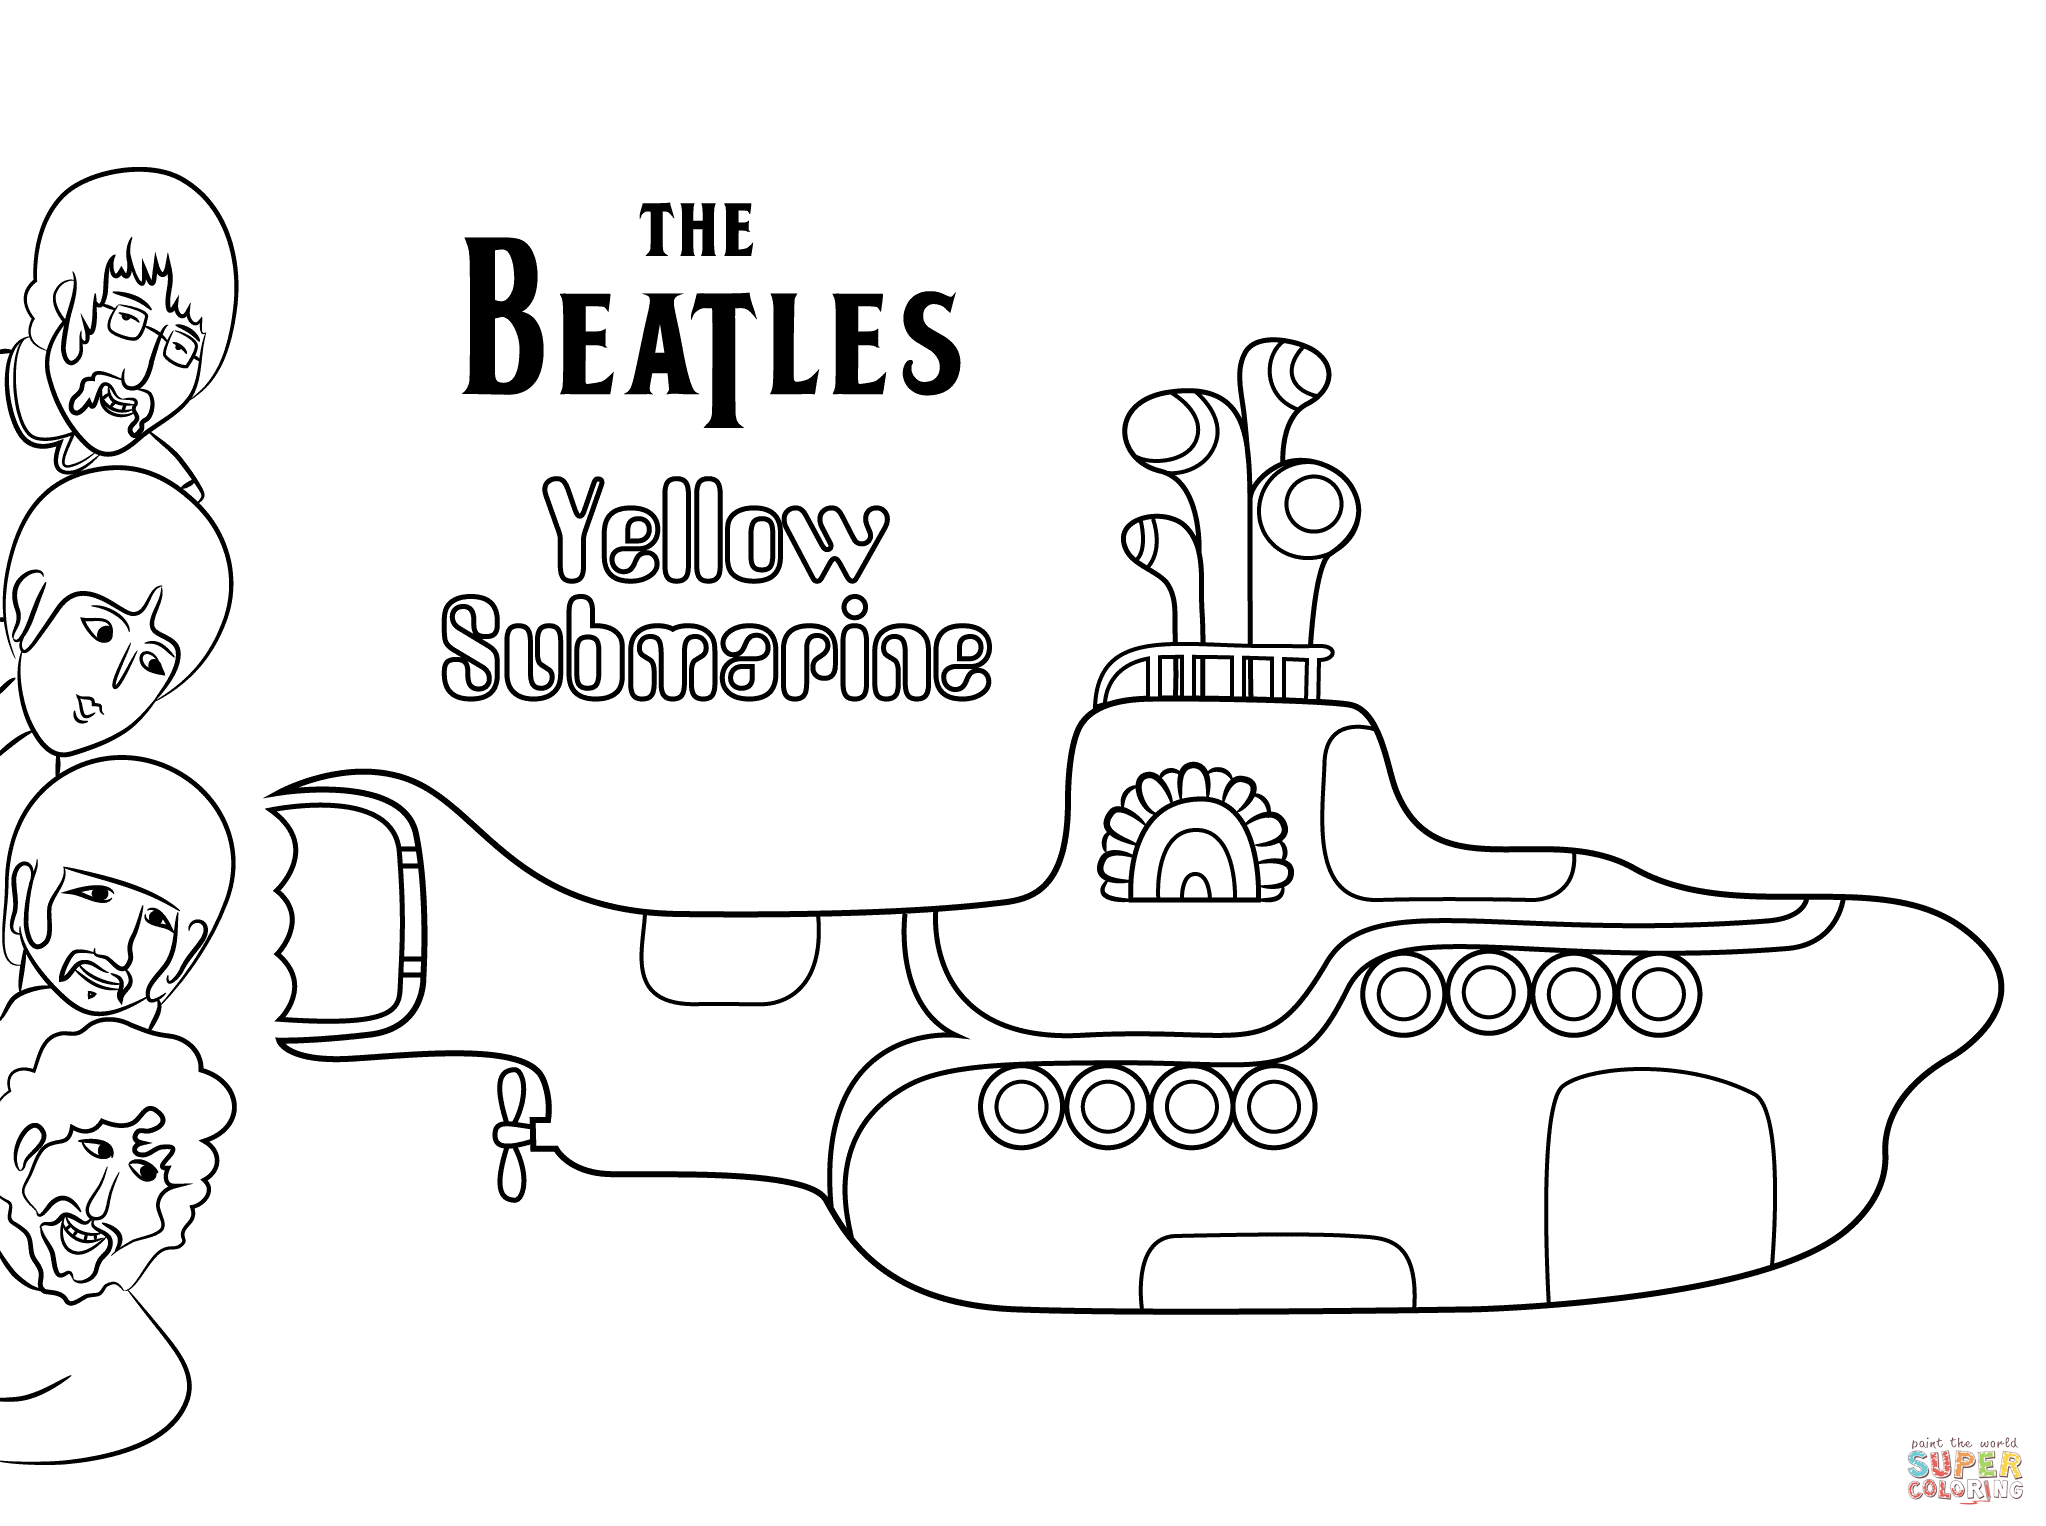 The Beatles Yellow Submarine Cover Art Coloring Page